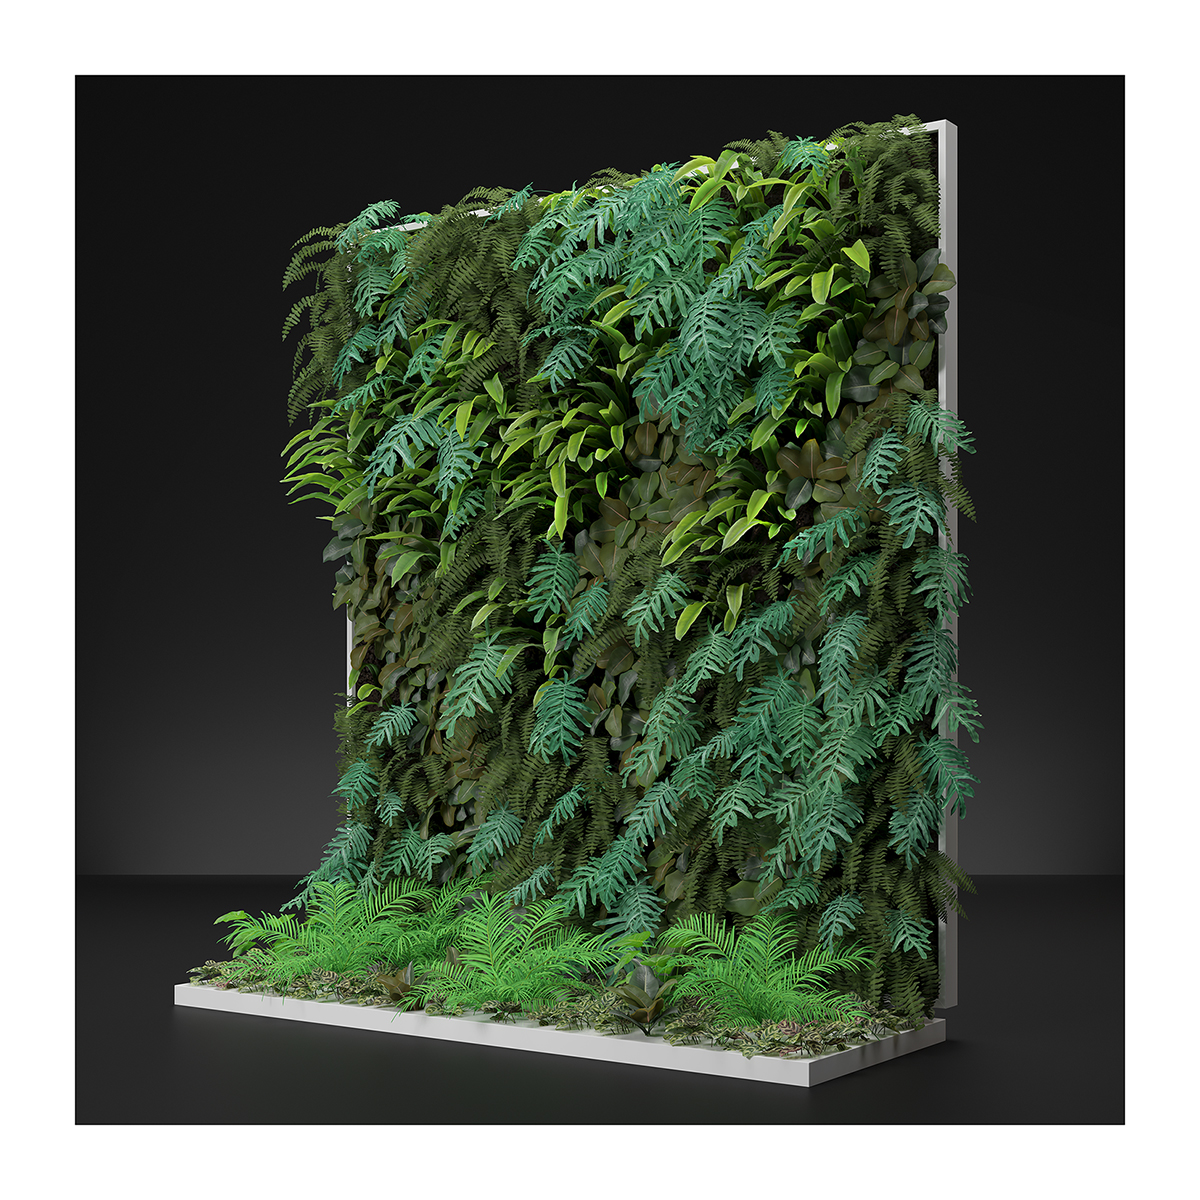 Virtual Vertical Garden N2 003 1 - 2020 - Virtual Vertical Garden N°2